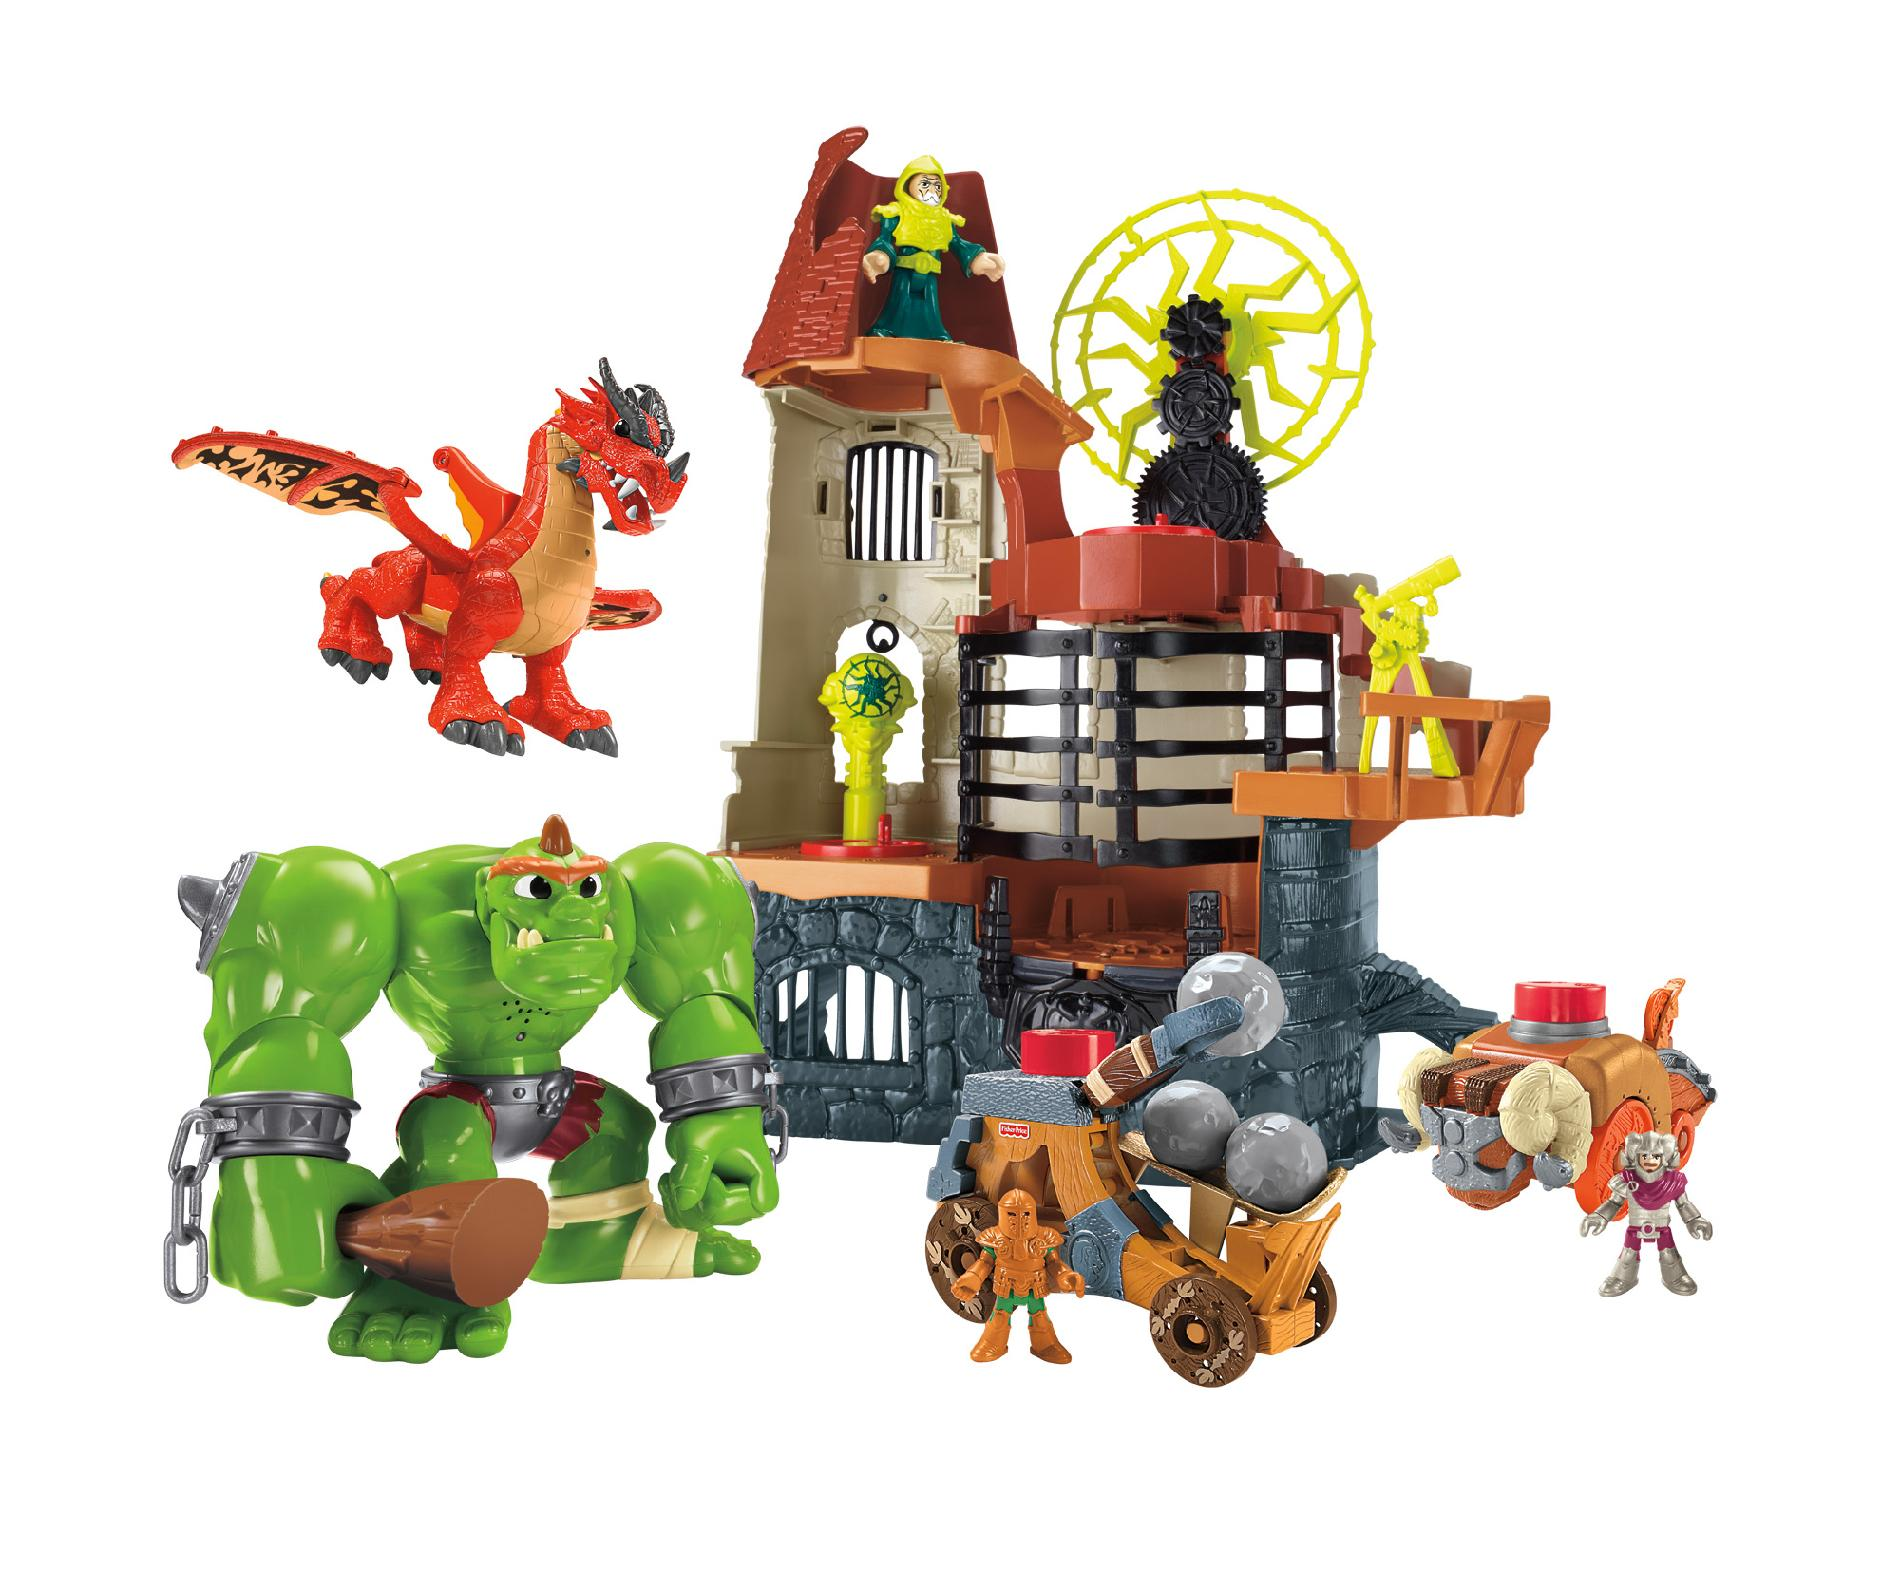 Imaginext Castle Wizard Tower Fisher